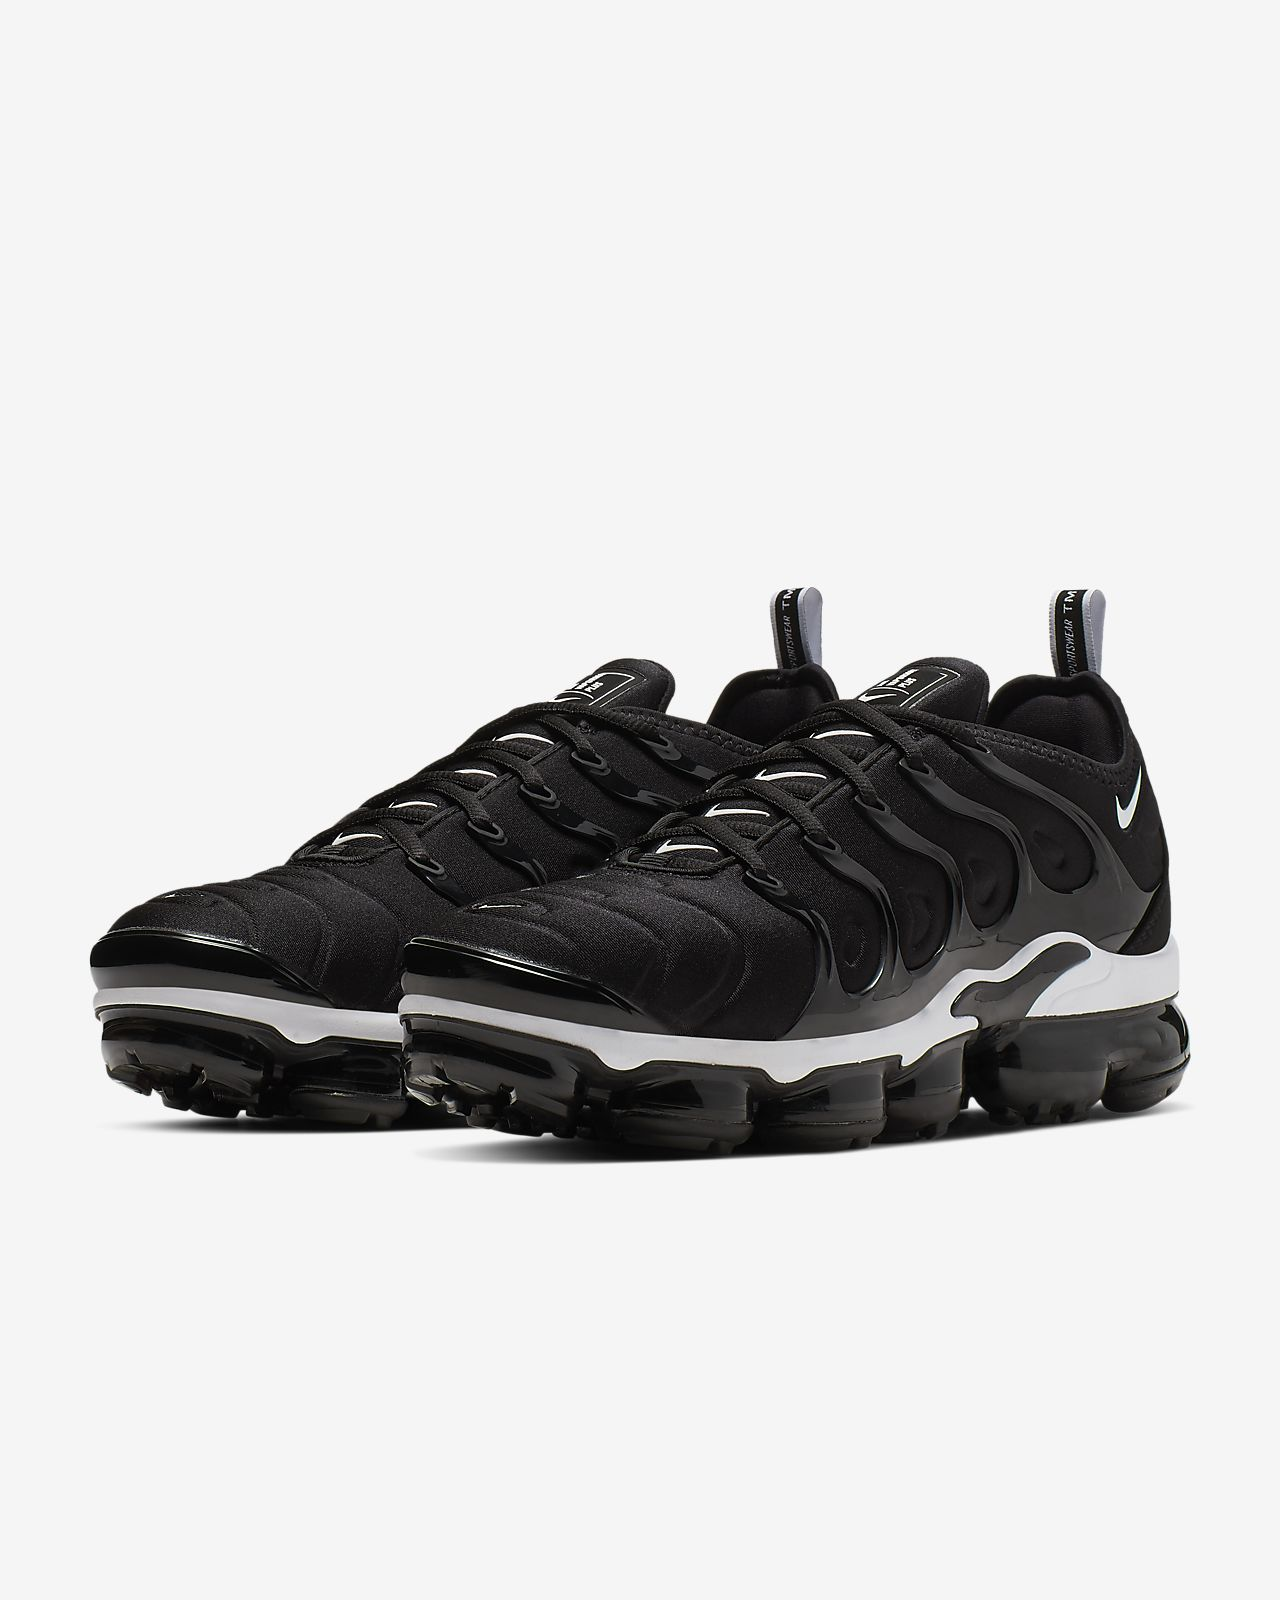 2921ff9437f Nike Air VaporMax Plus Men s Shoe. Nike.com CA